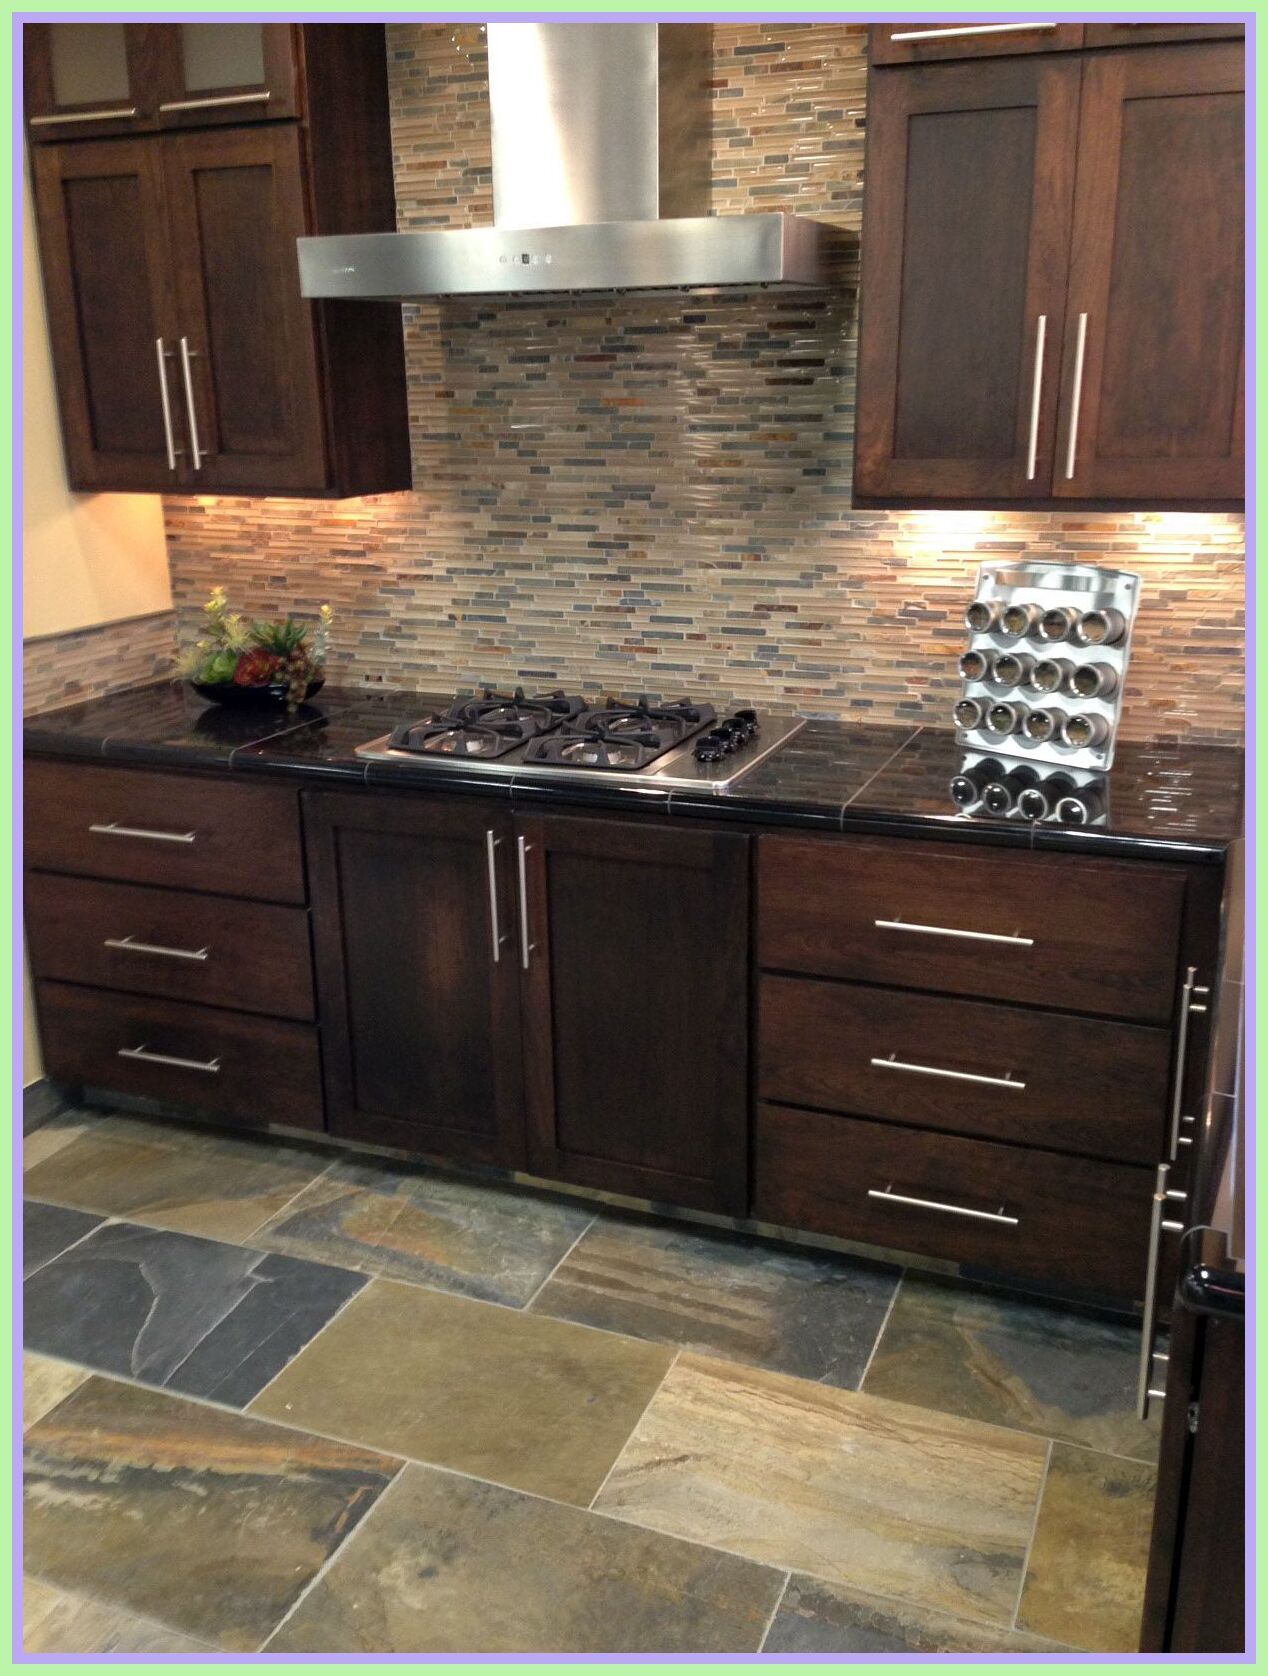 87 Reference Of Floor Tile Kitchen Wall Tiles In 2020 Patterned Tile Backsplash Kitchen Wall Tiles Backsplash Kitchen White Cabinets